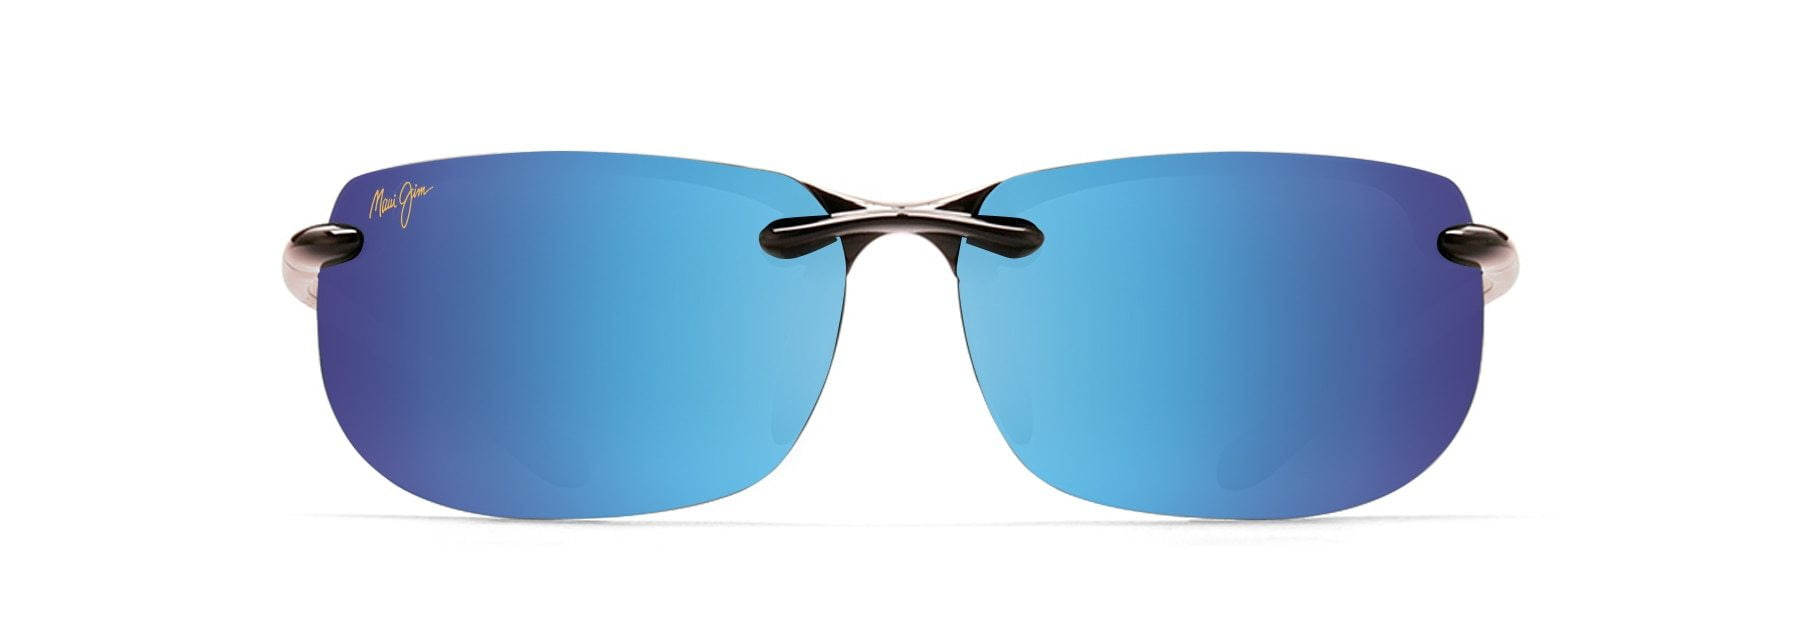 MyMaui Banyans MM412-014 Sunglasses